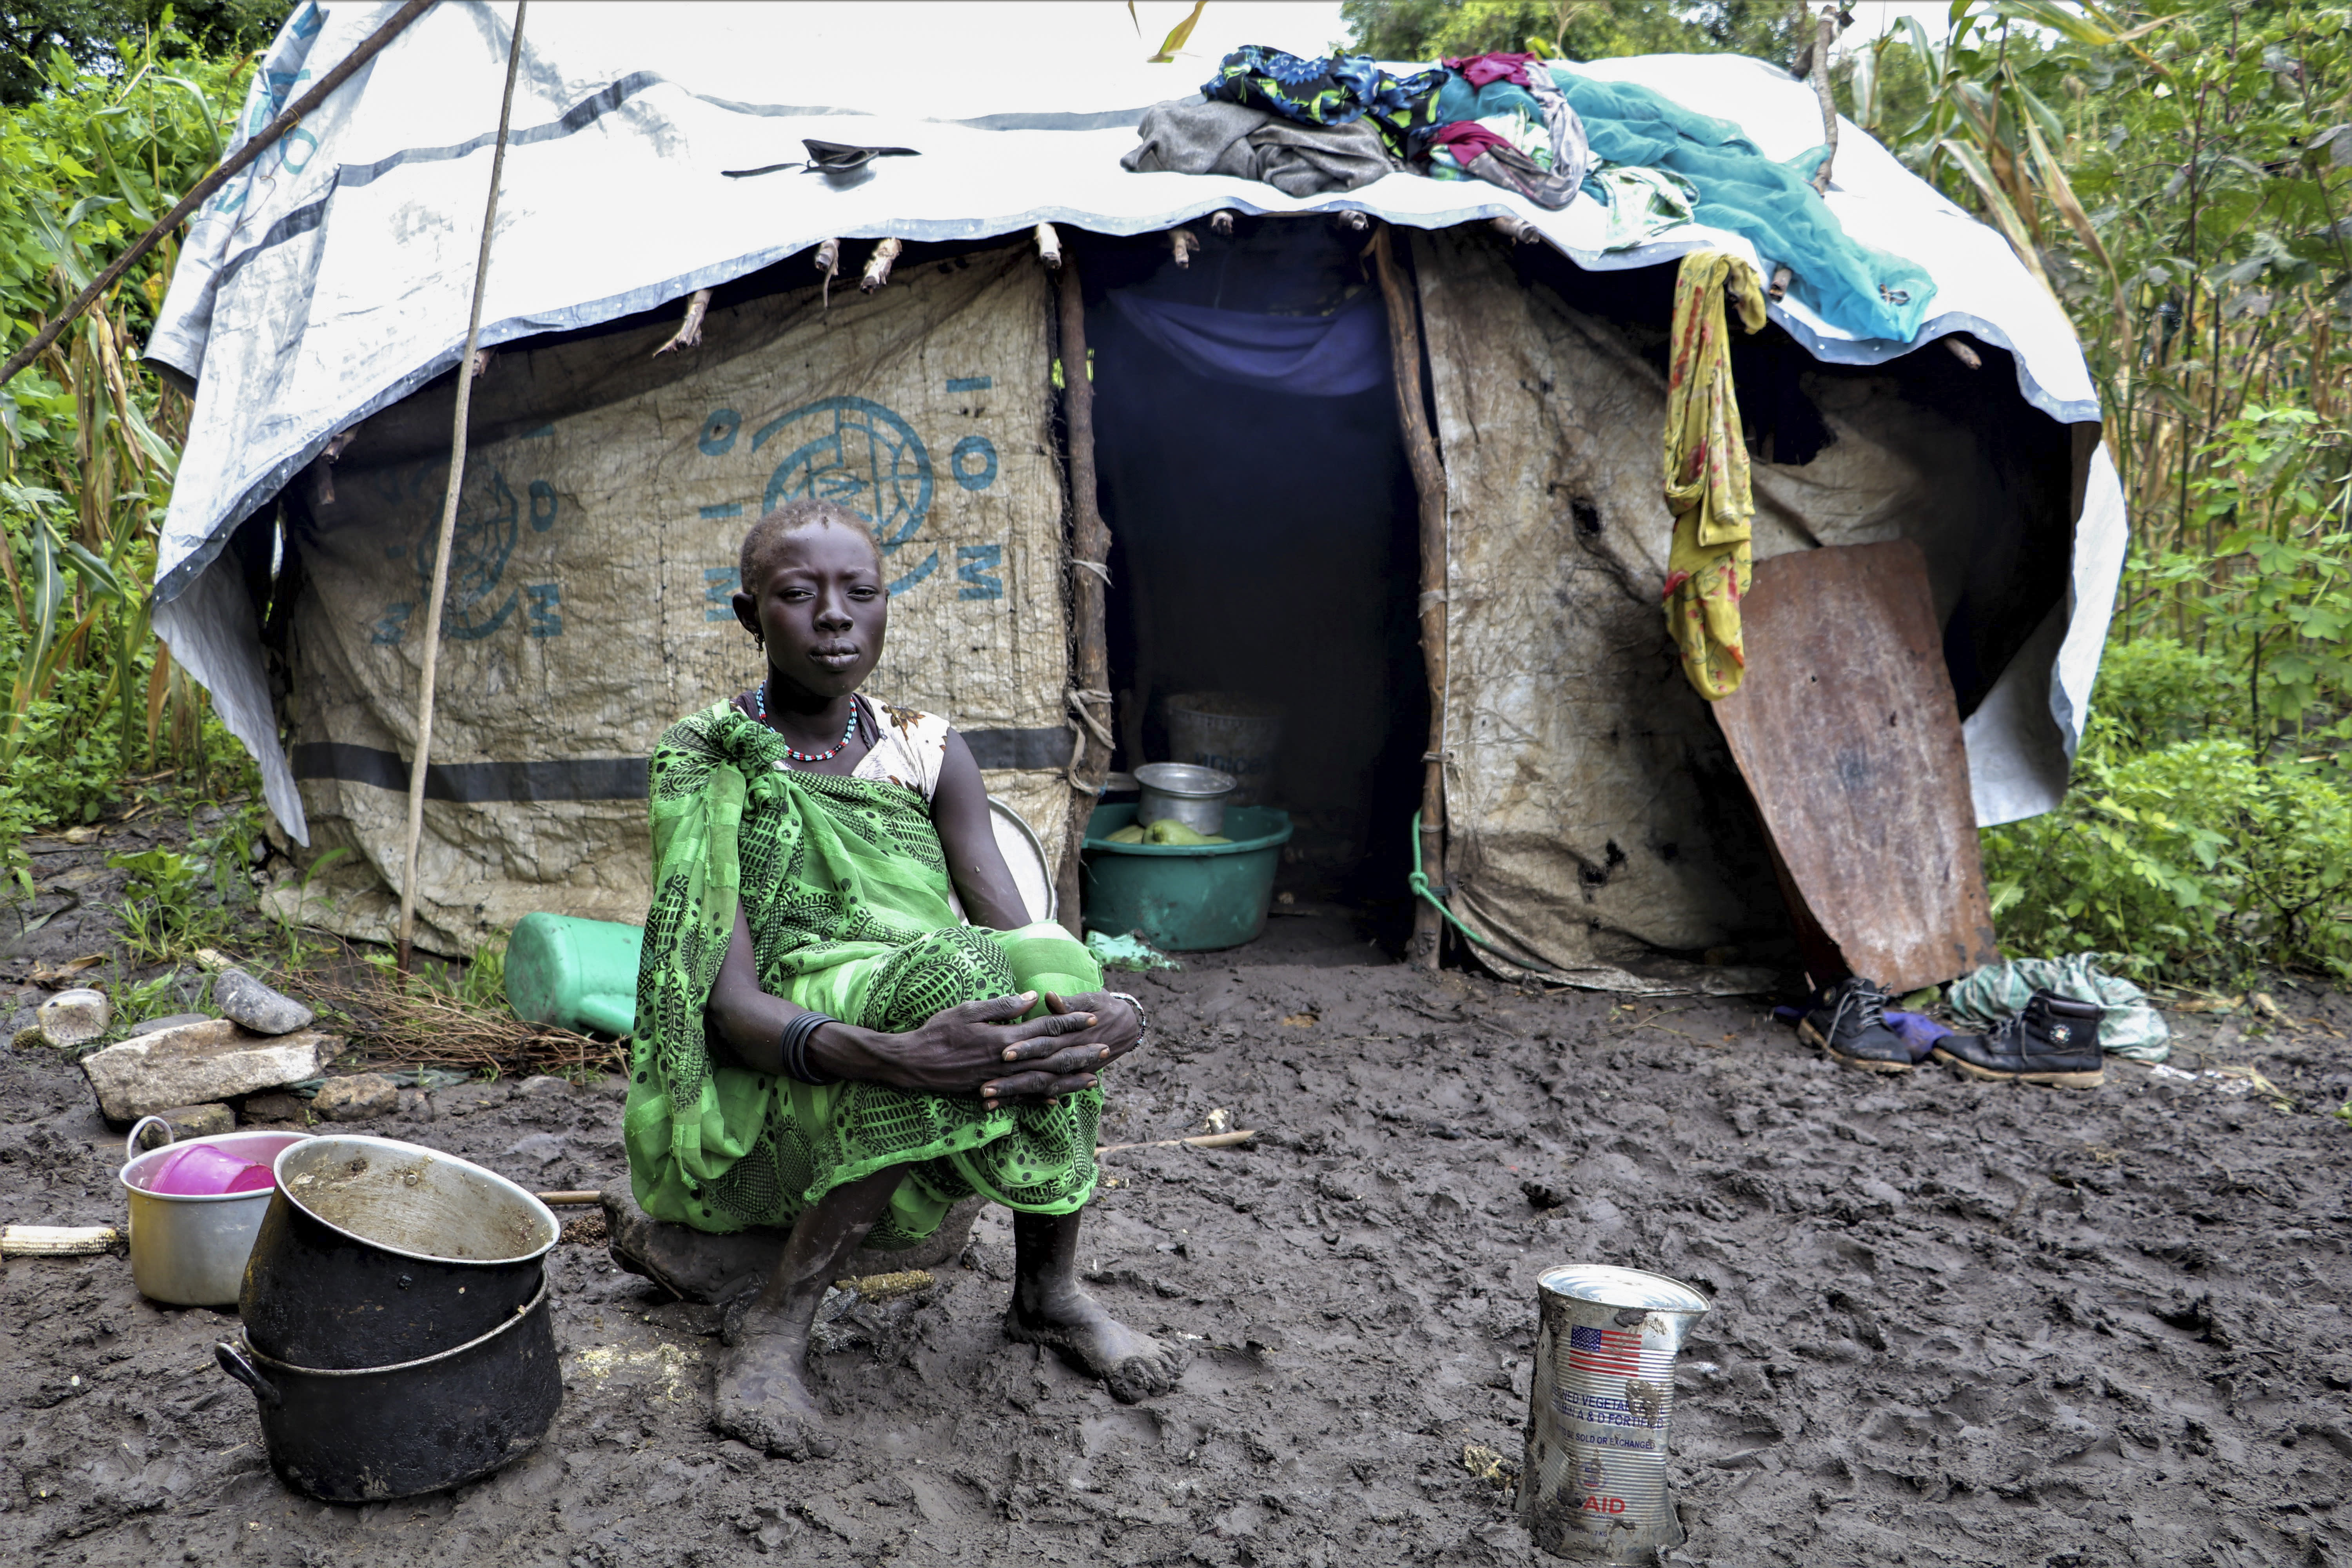 A young woman sits in front of her shelter after heavy rainfall and flooding destroyed her crops, in Lukurunyang in the Greater Pibor Administrative Area, South Sudan, Monday, Sept. 7, 2020. Flooding has affected well over a million people across East Africa, another calamity threatening food security on top of a historic locust outbreak and the coronavirus pandemic. (Tetiana Gaviuk/Medecins Sans Frontieres via AP)